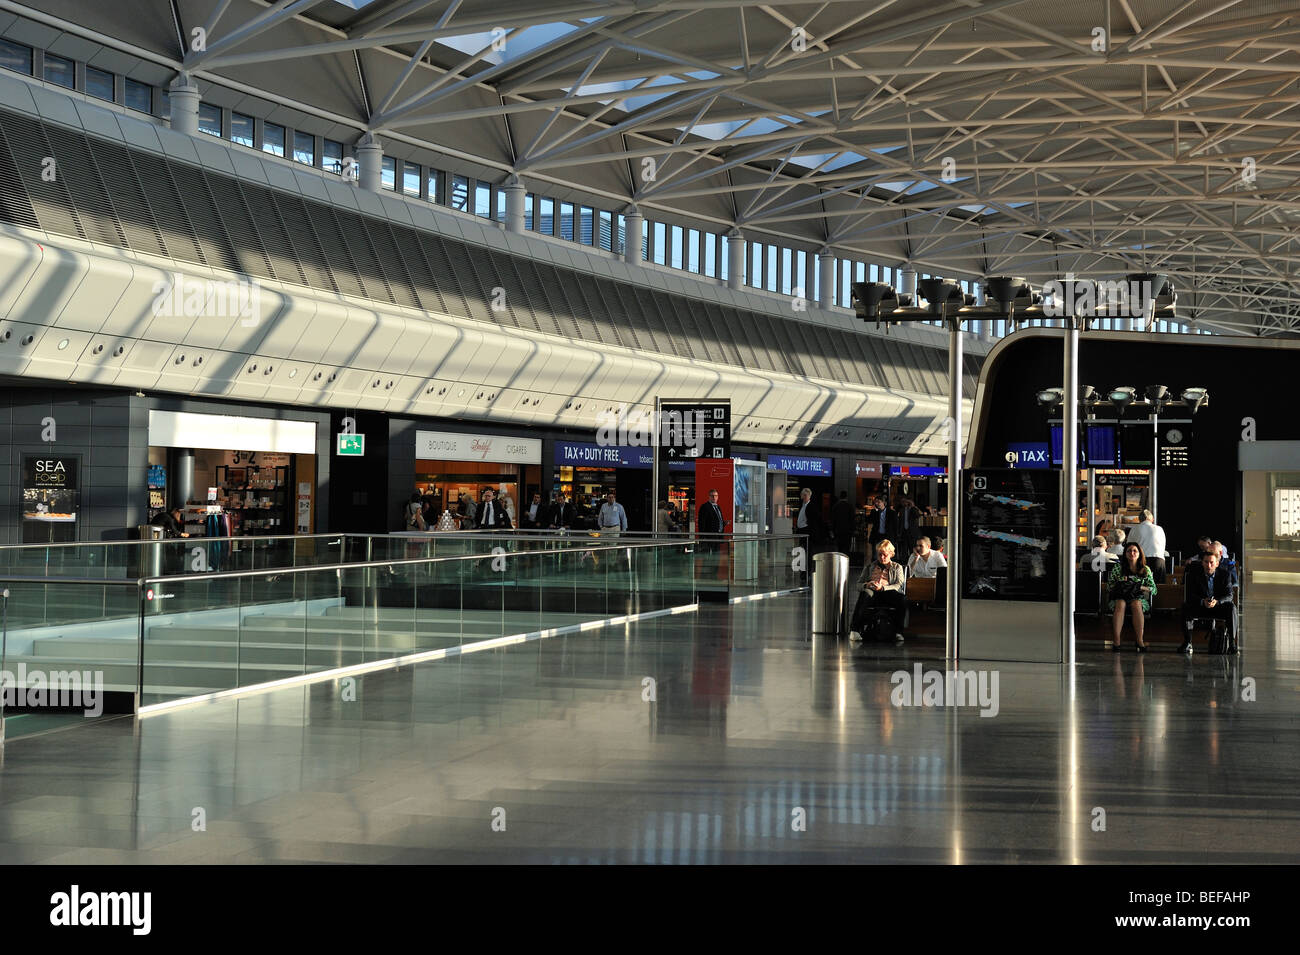 A walkway in Zurich Airport - Stock Image